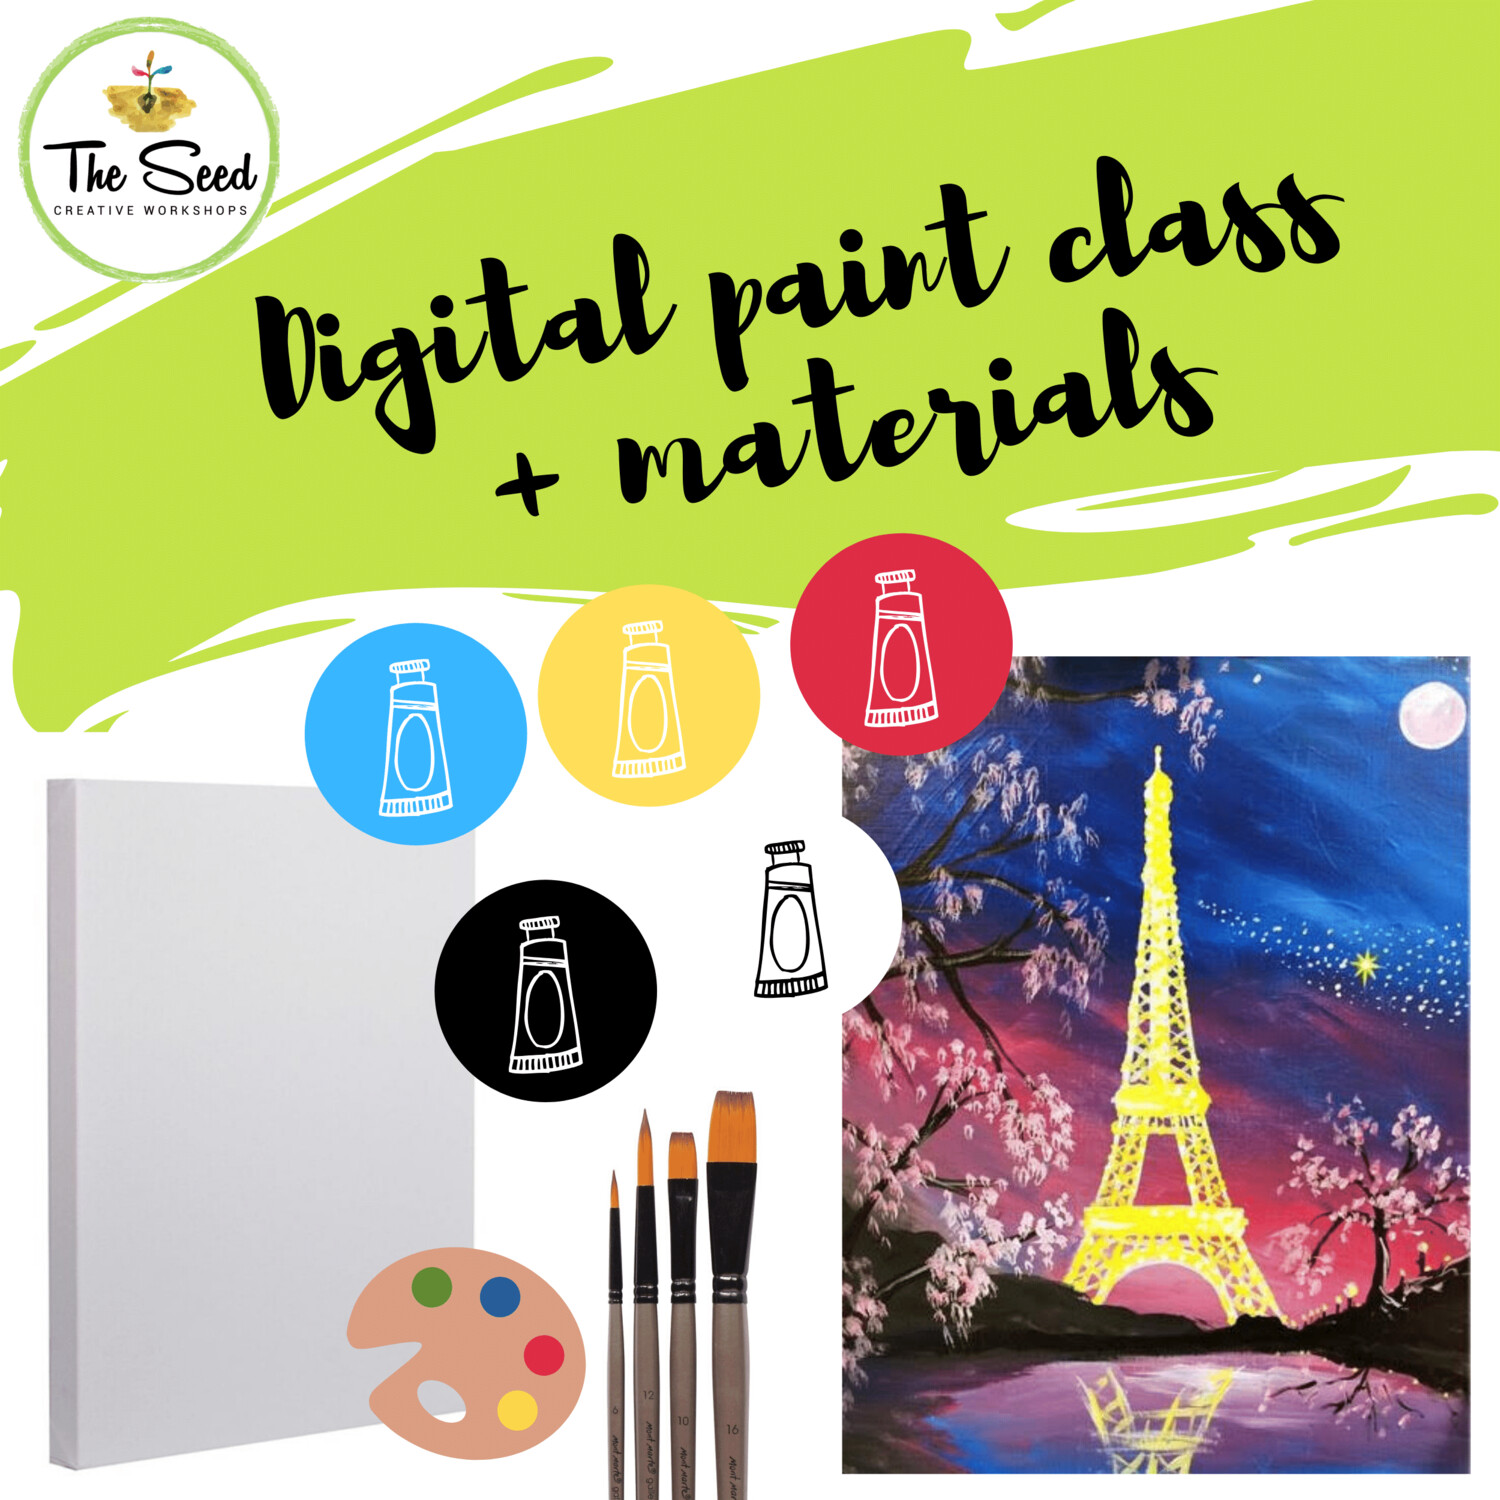 Eiffel Tower Digital painting class - materials + video + written instructions